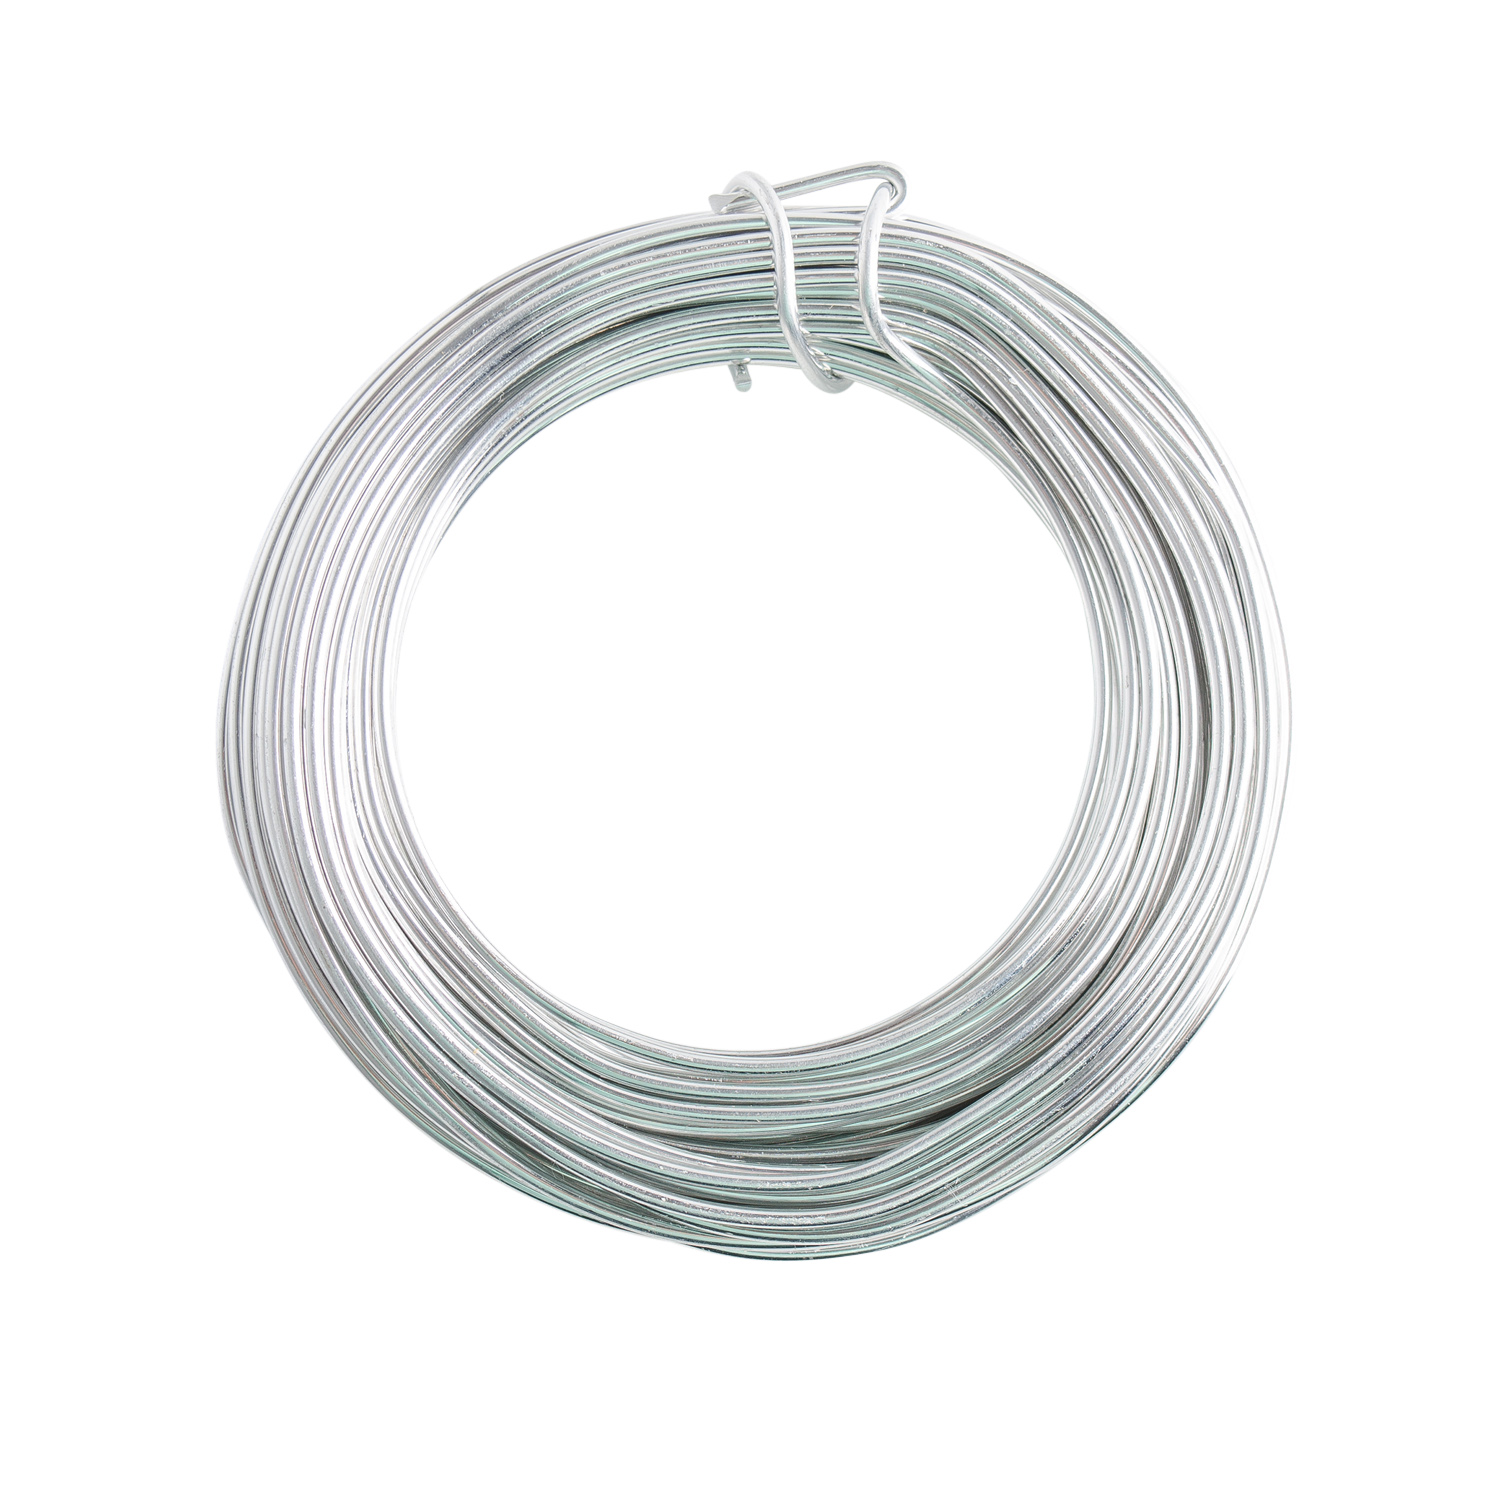 18 Gauge Silver Enameled Aluminum Wire - 200ft